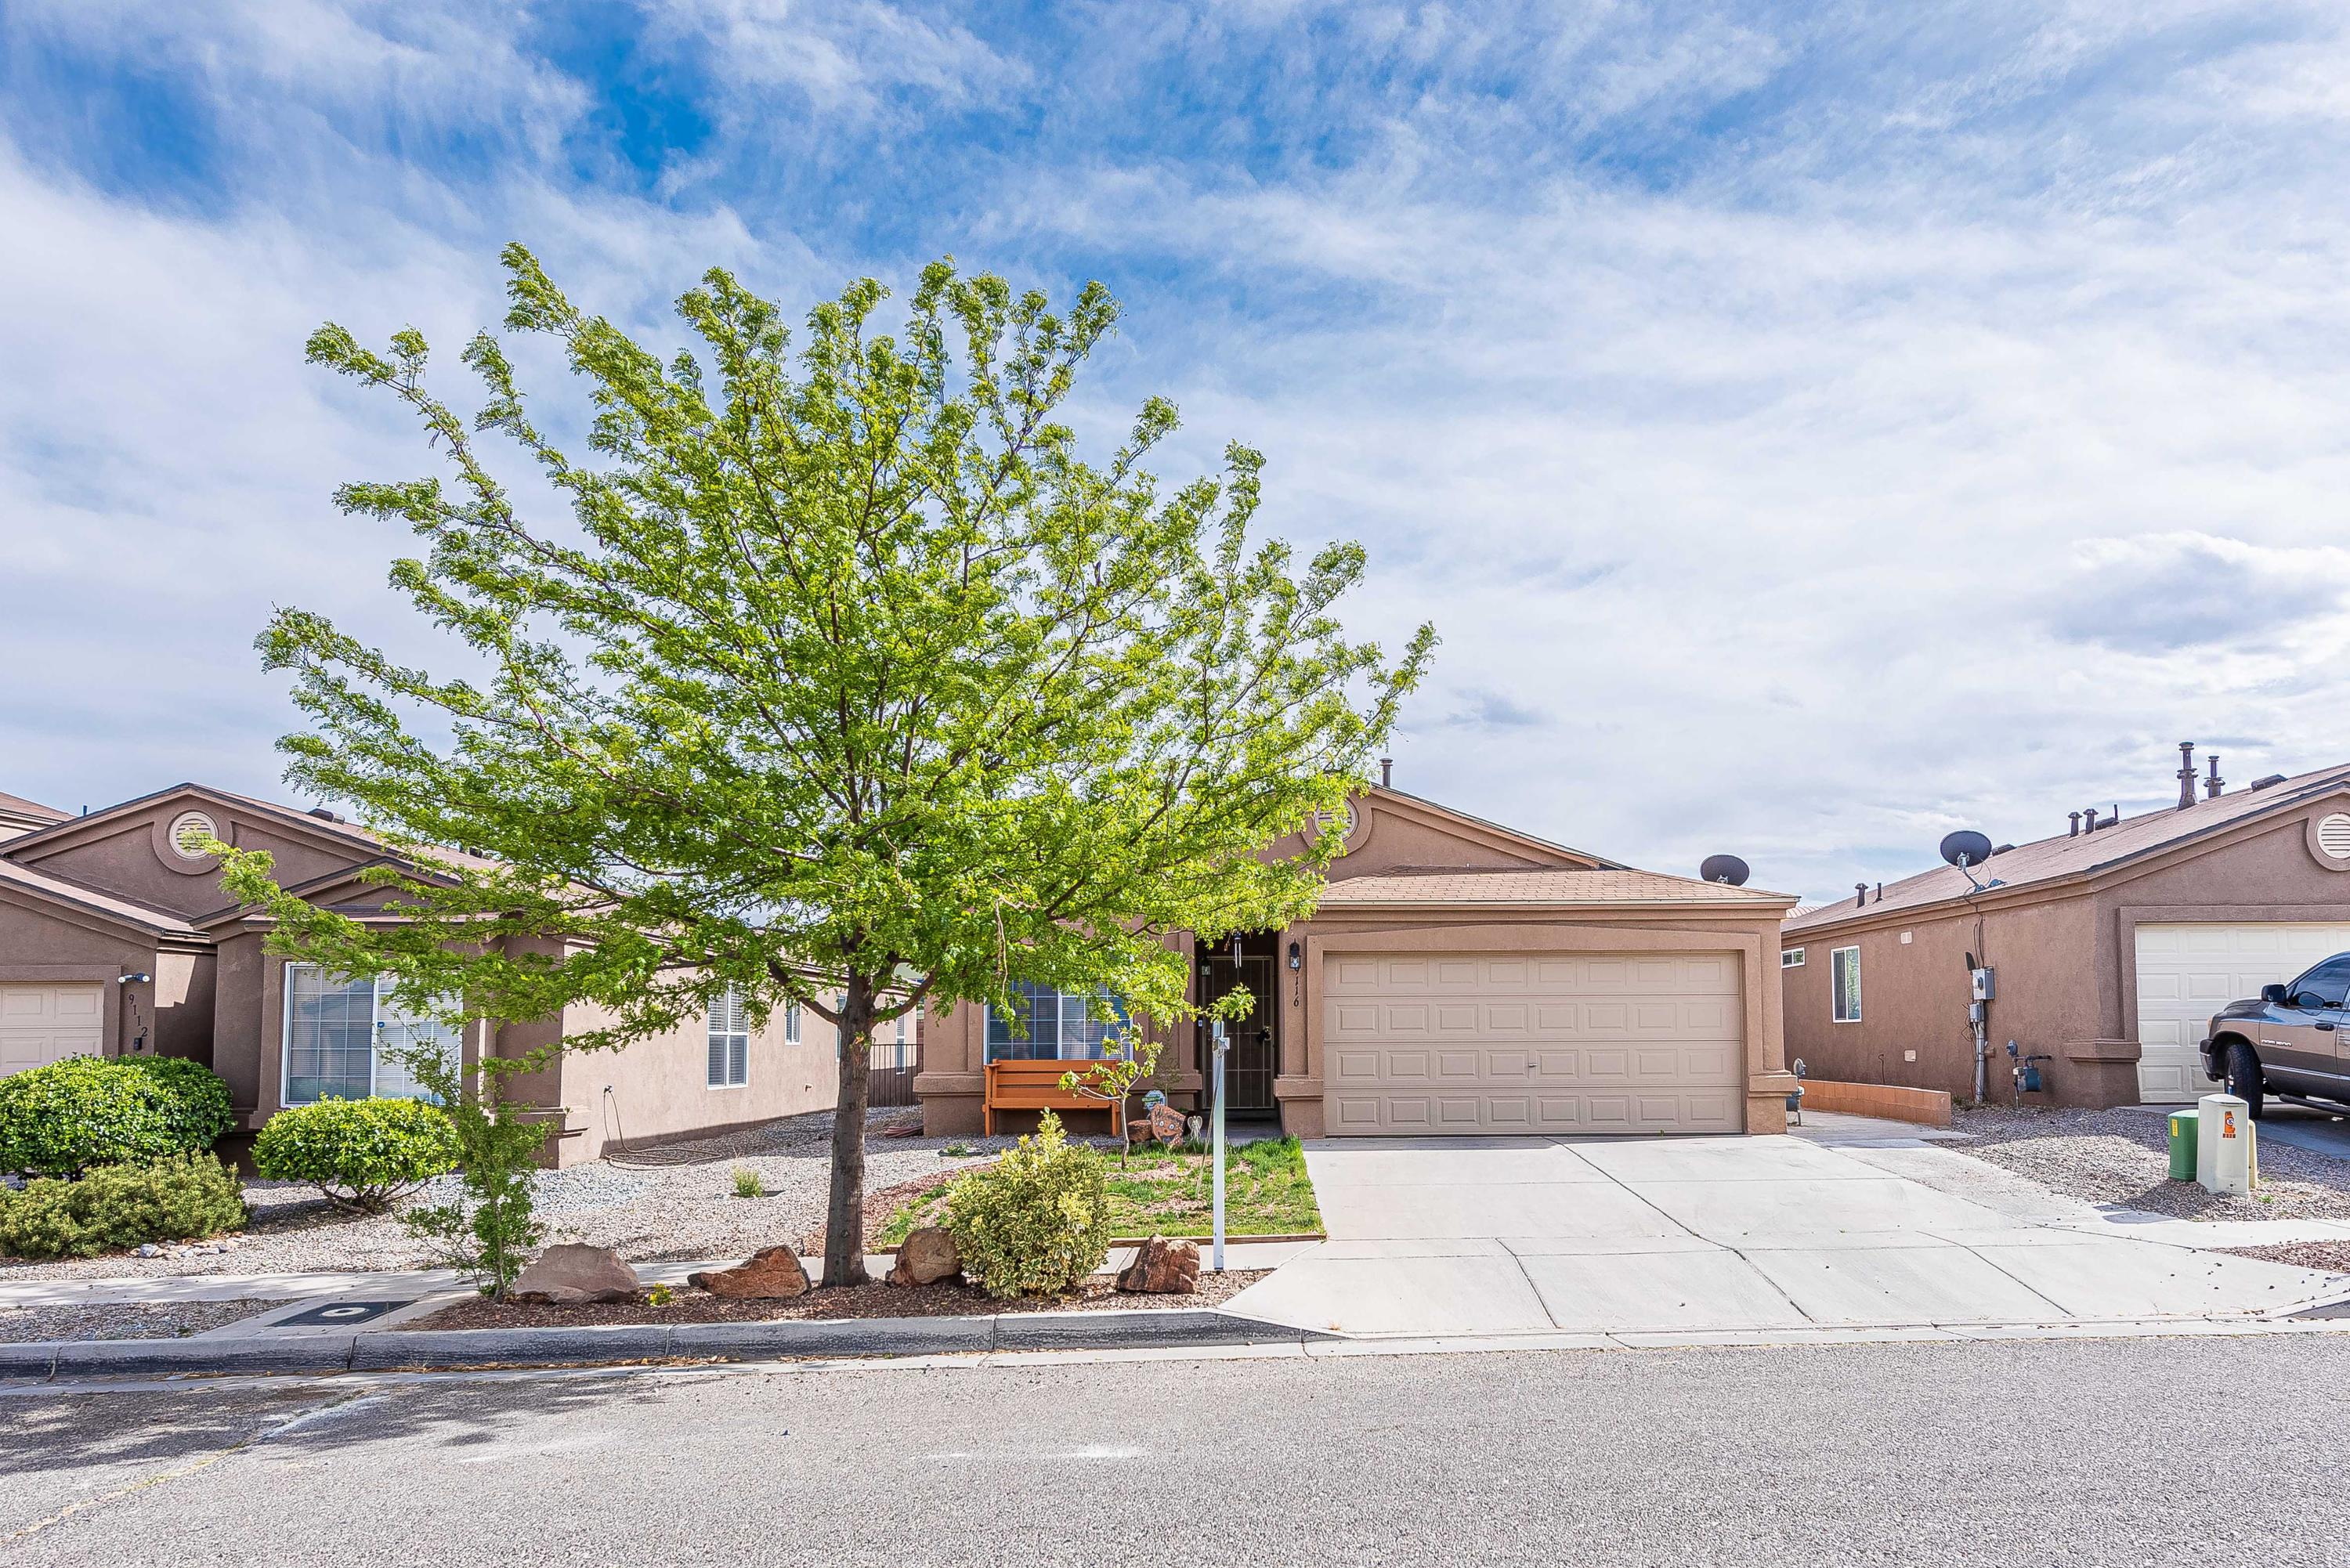 Great three bedroom move-in ready home, granite kitchen and bathroom counters, newer flooring, refrigerated air, relaxing back yard with cover patio and mature fruit trees, schedule your showing ASAP!